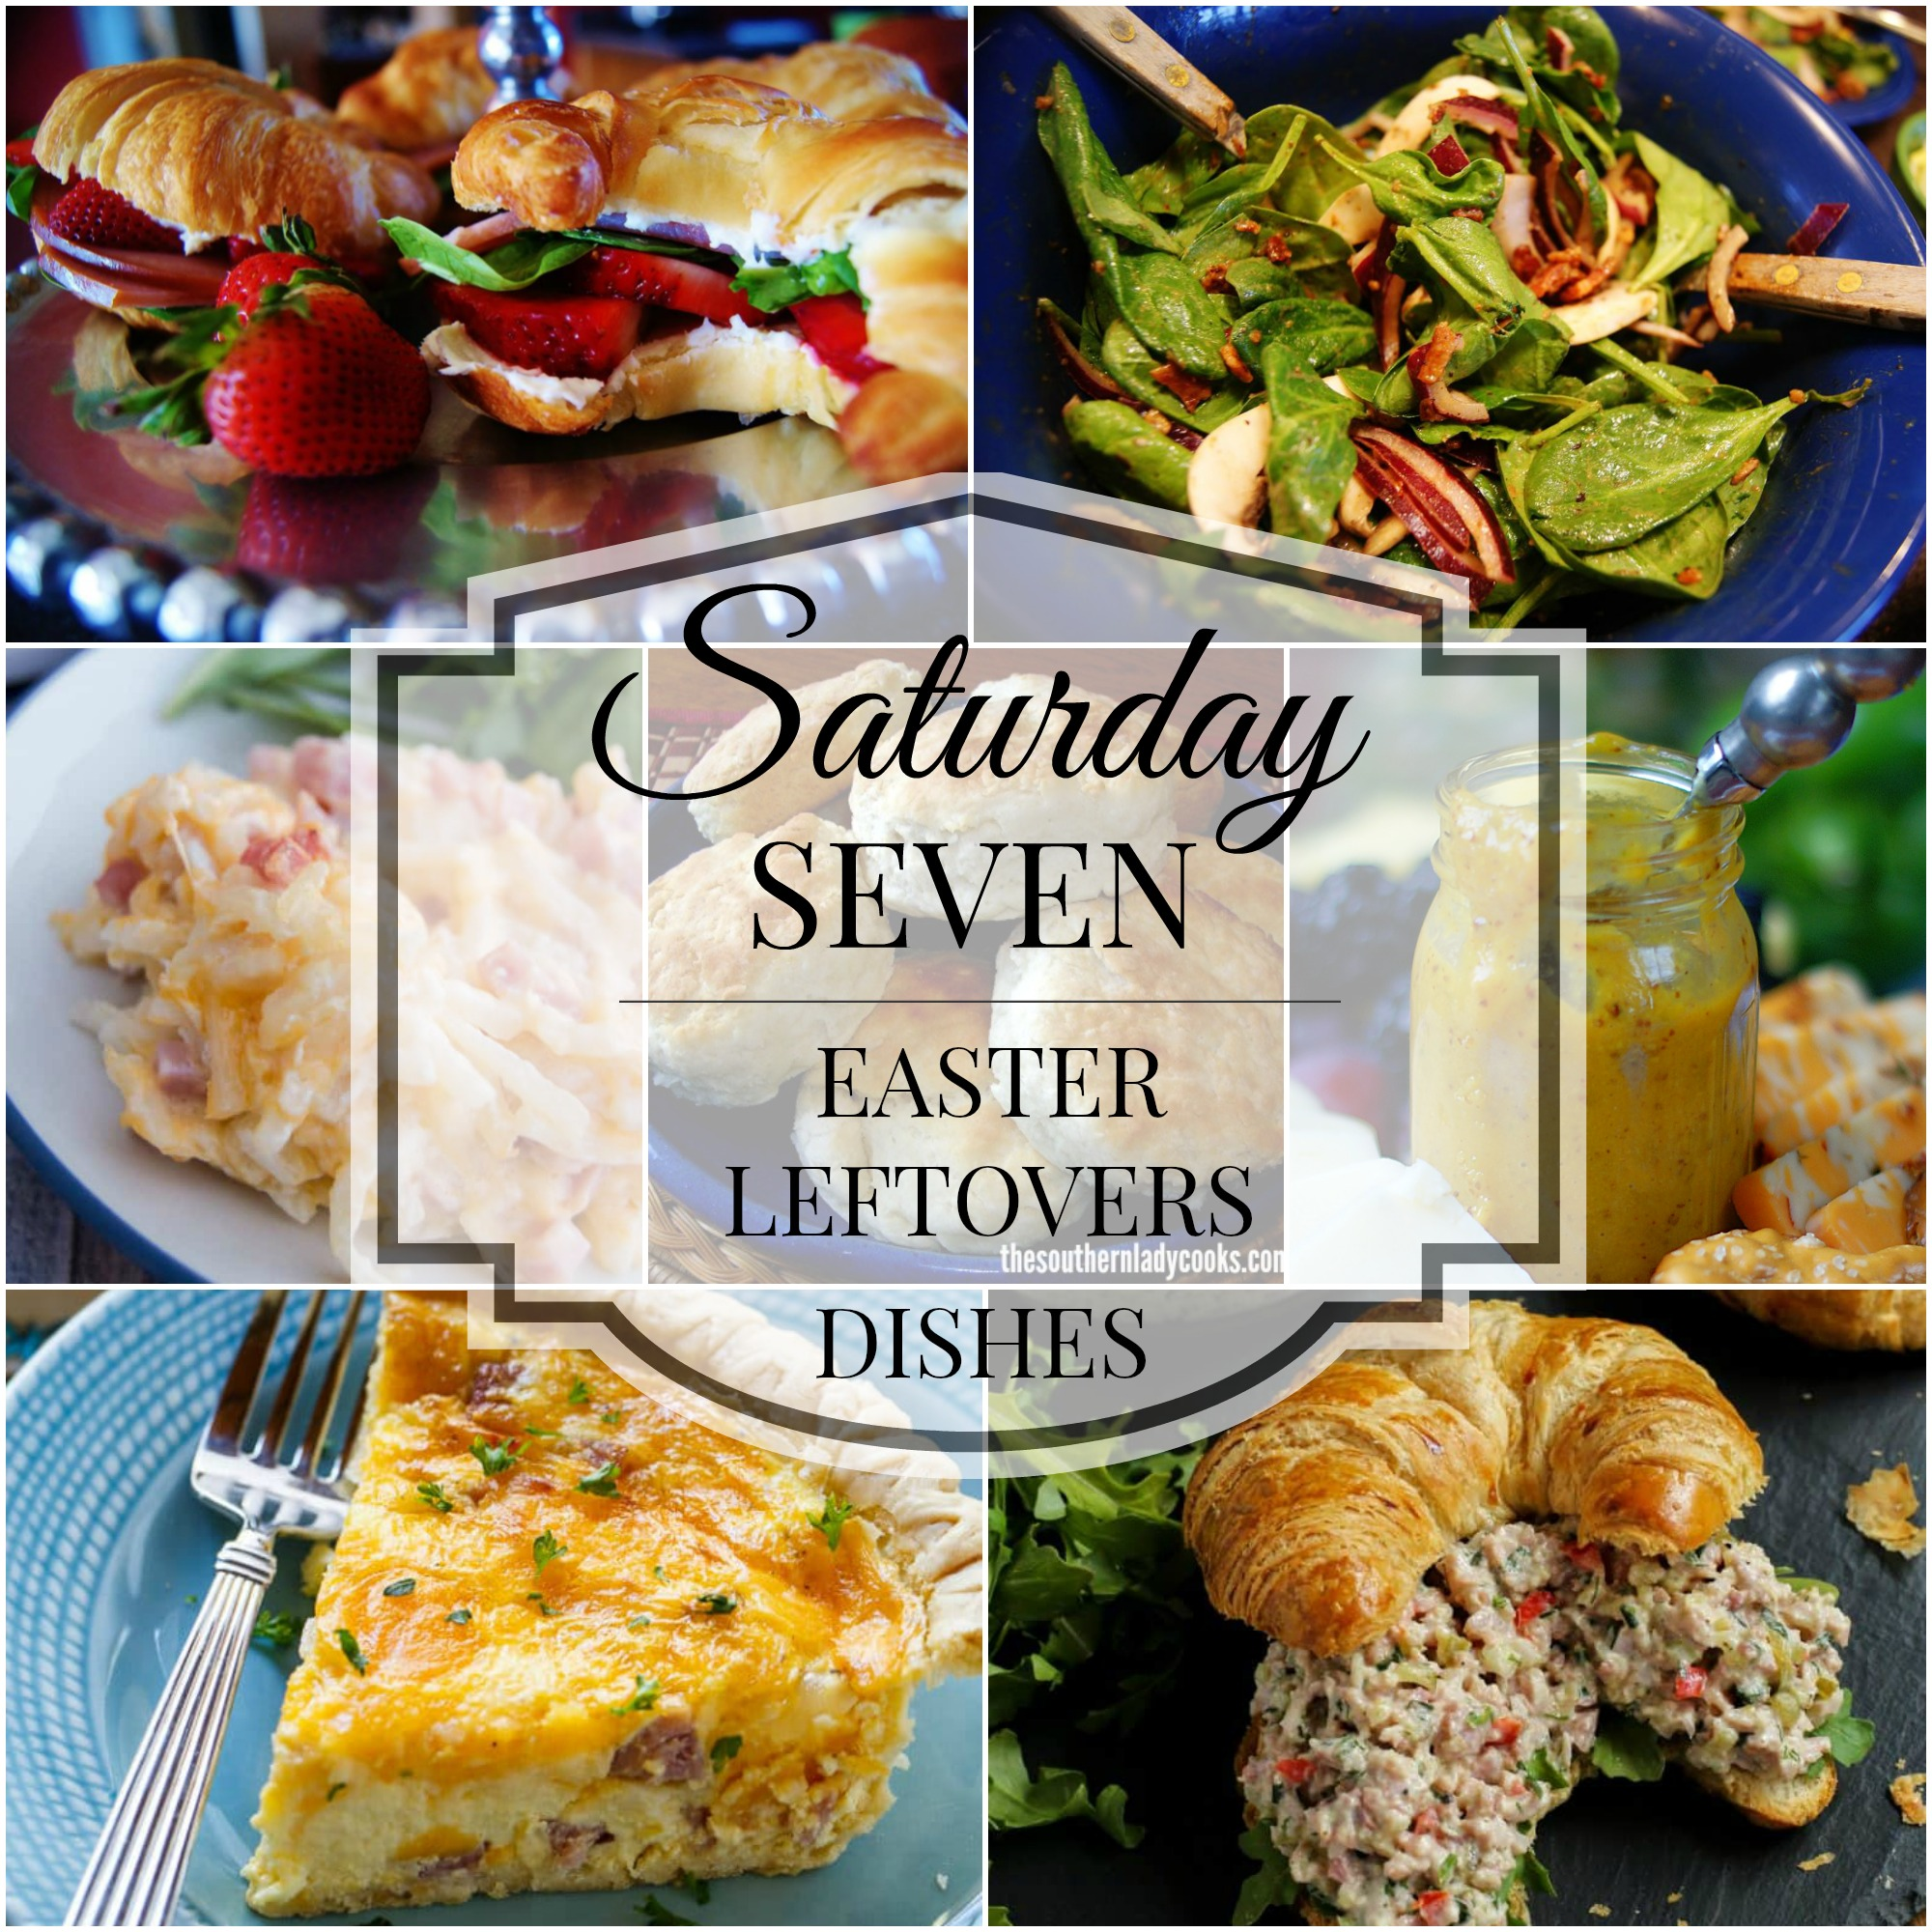 Saturday Seven- Delicious Dishes for Easter Leftovers